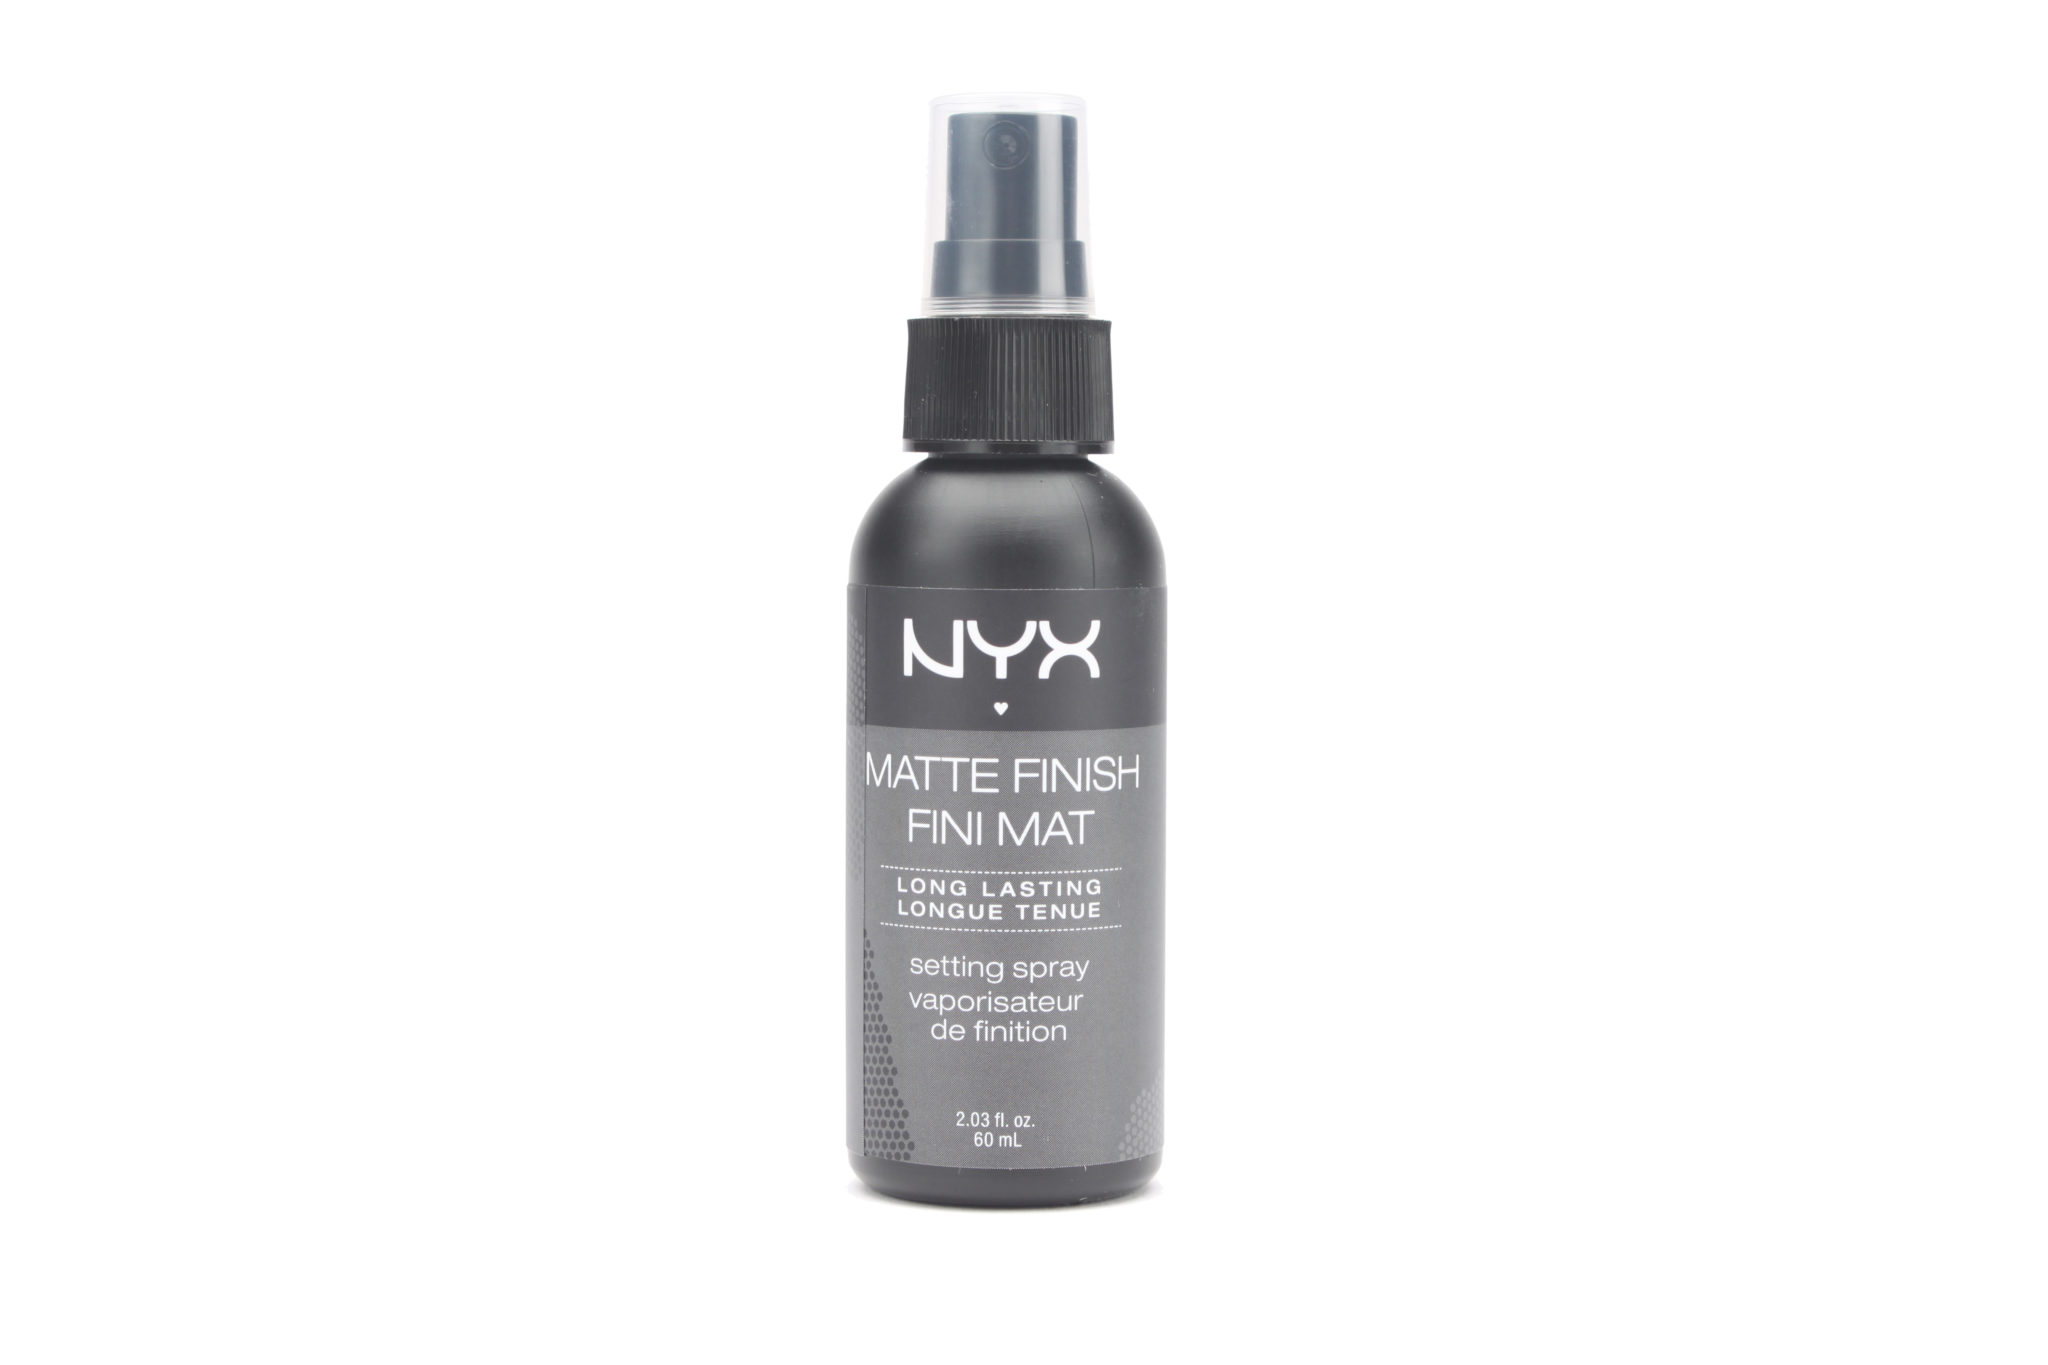 60855 Makeup Setting Spray Matte Finish 2.03 oz